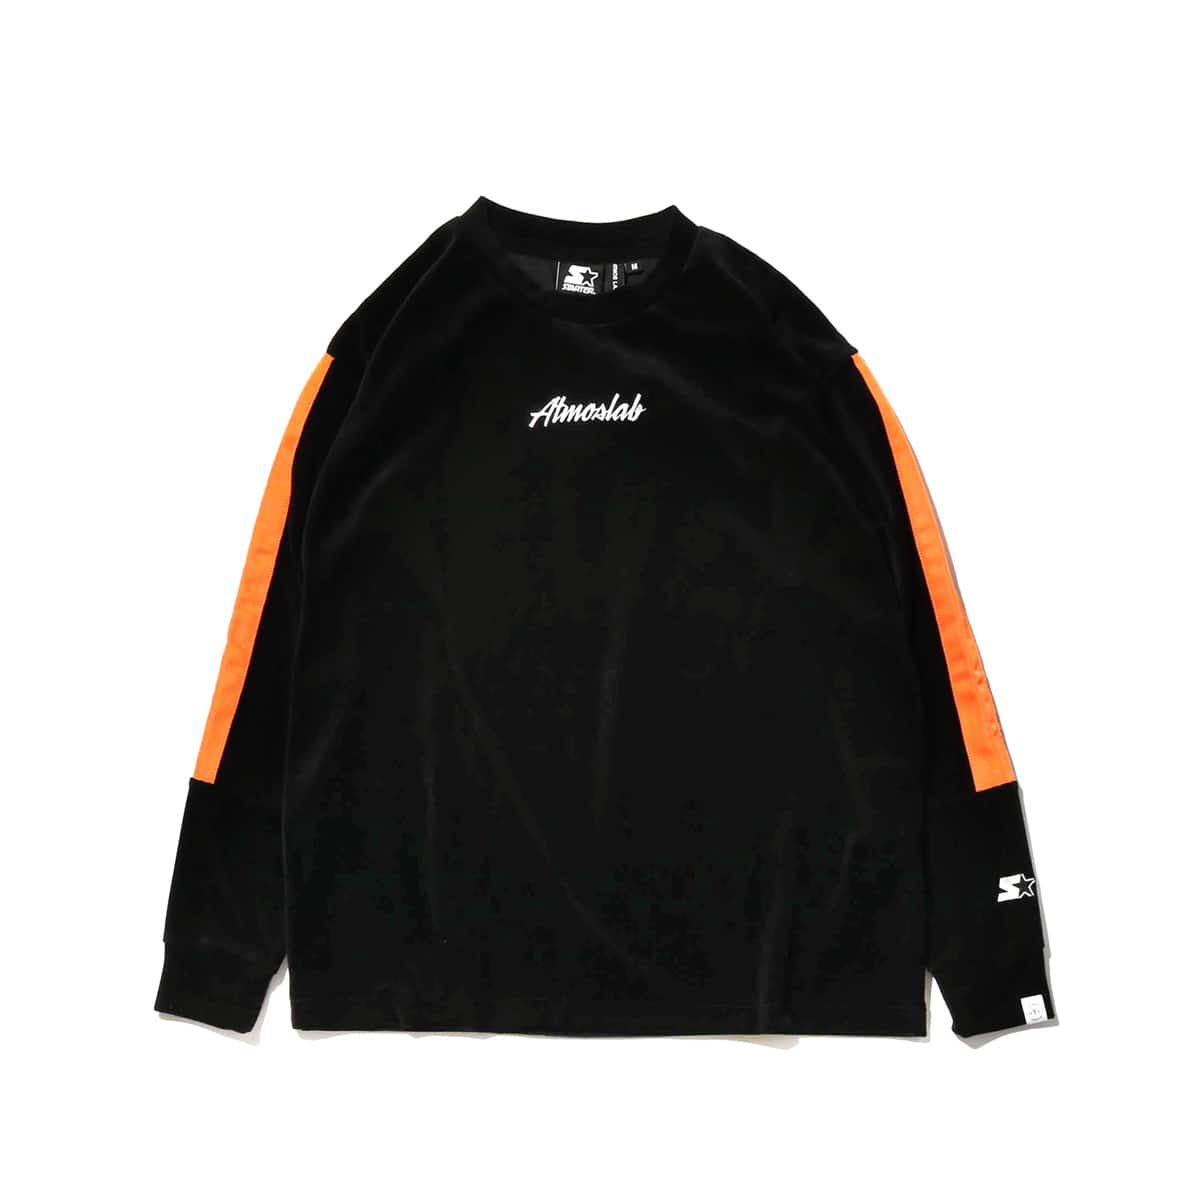 STARTER BLACK LABEL x ATMOS LAB WARM UP VELOUR LONG SLEEVE  orange_photo_large